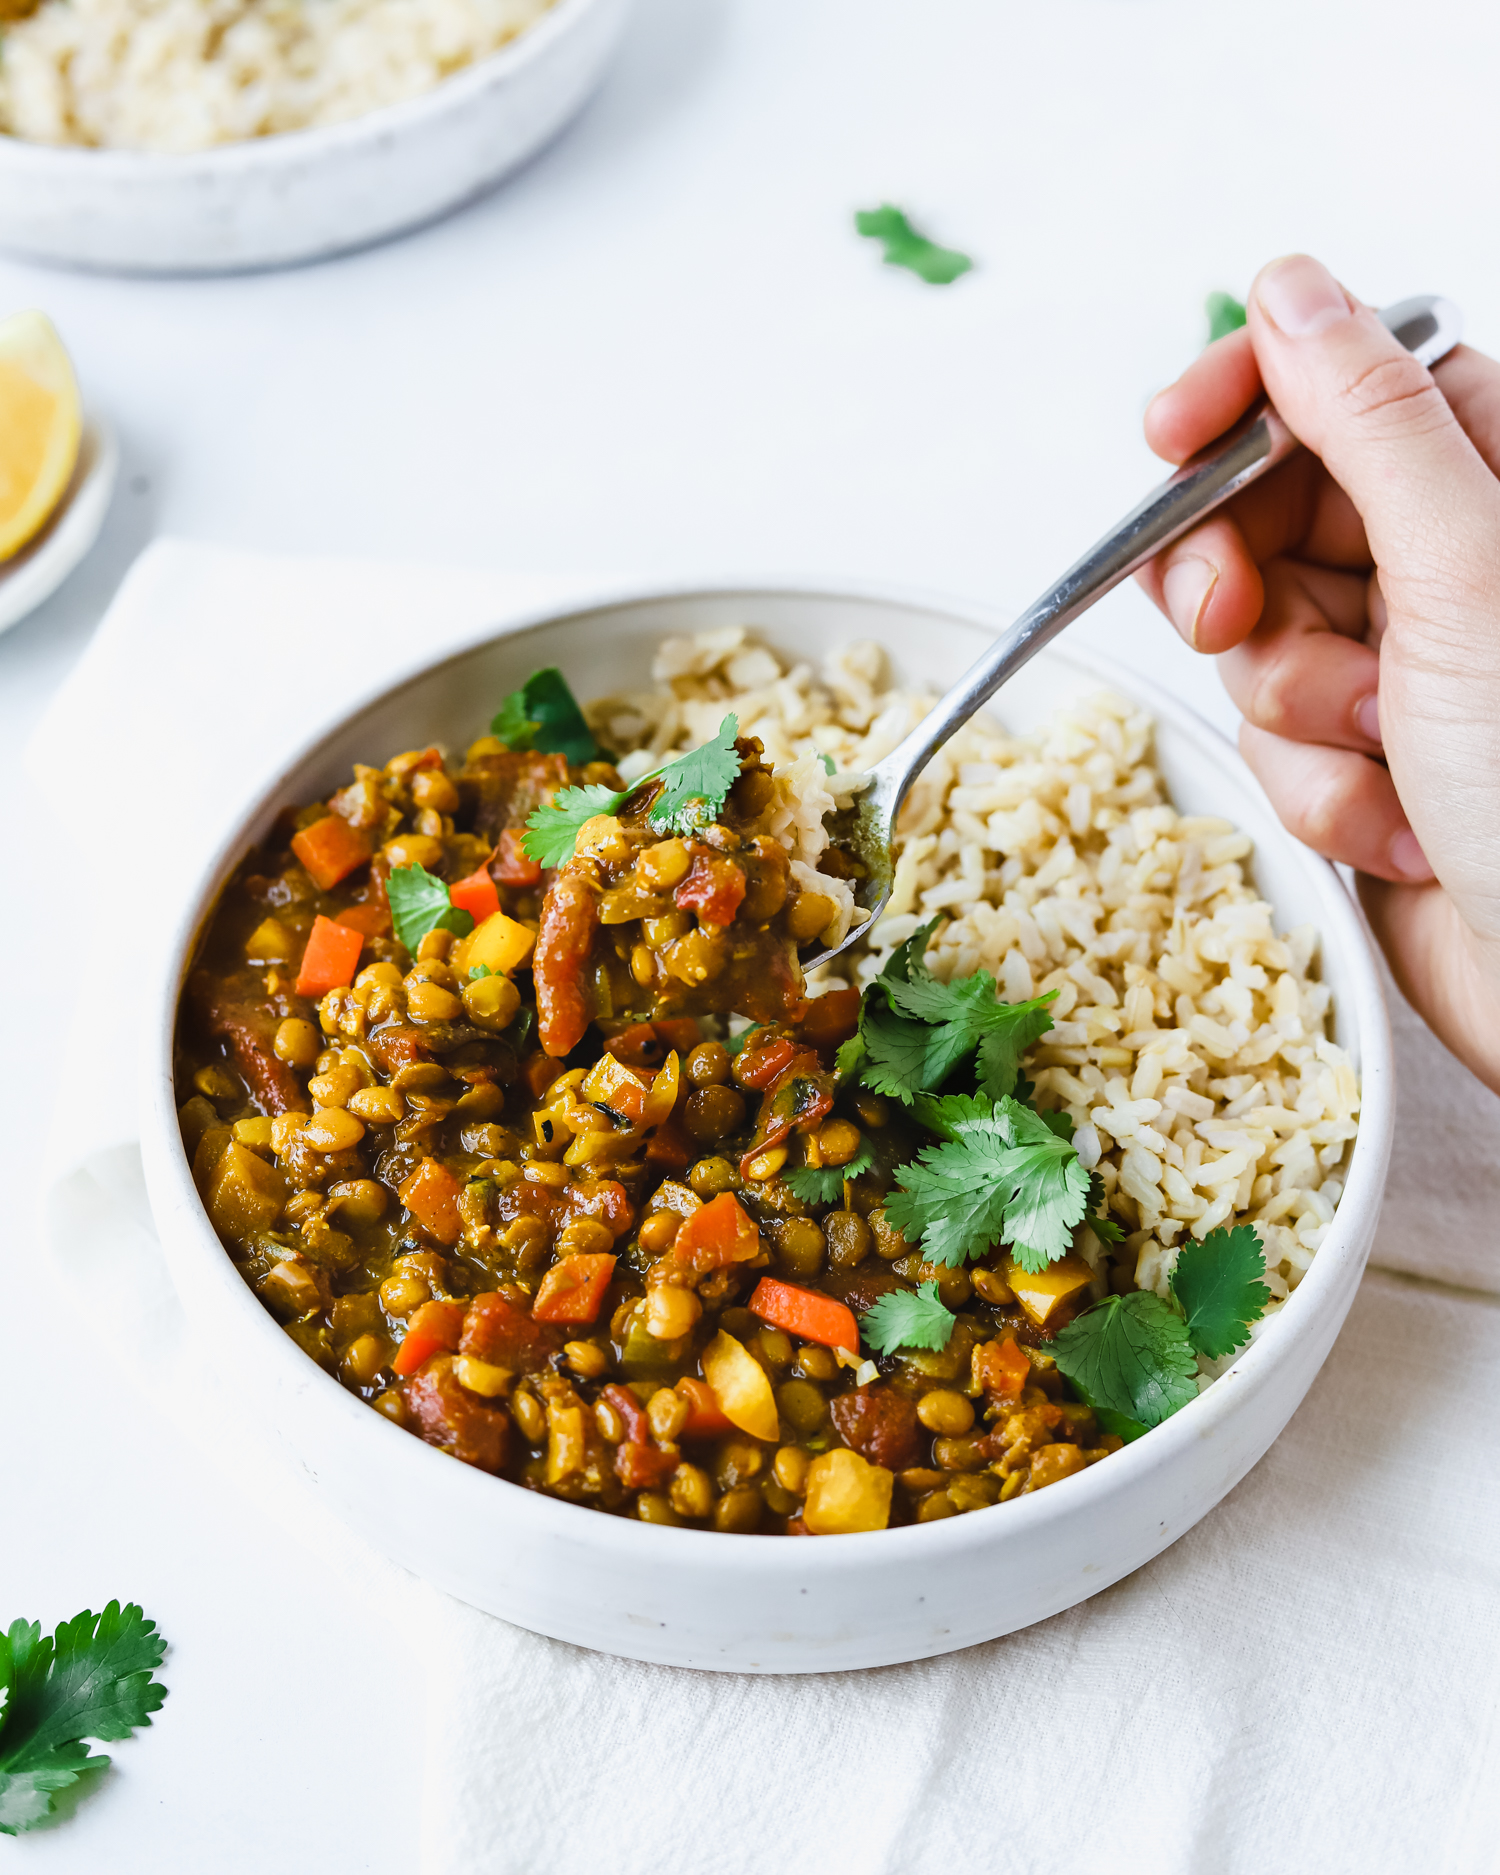 Eating a bowl of lentil curry with a spoon.